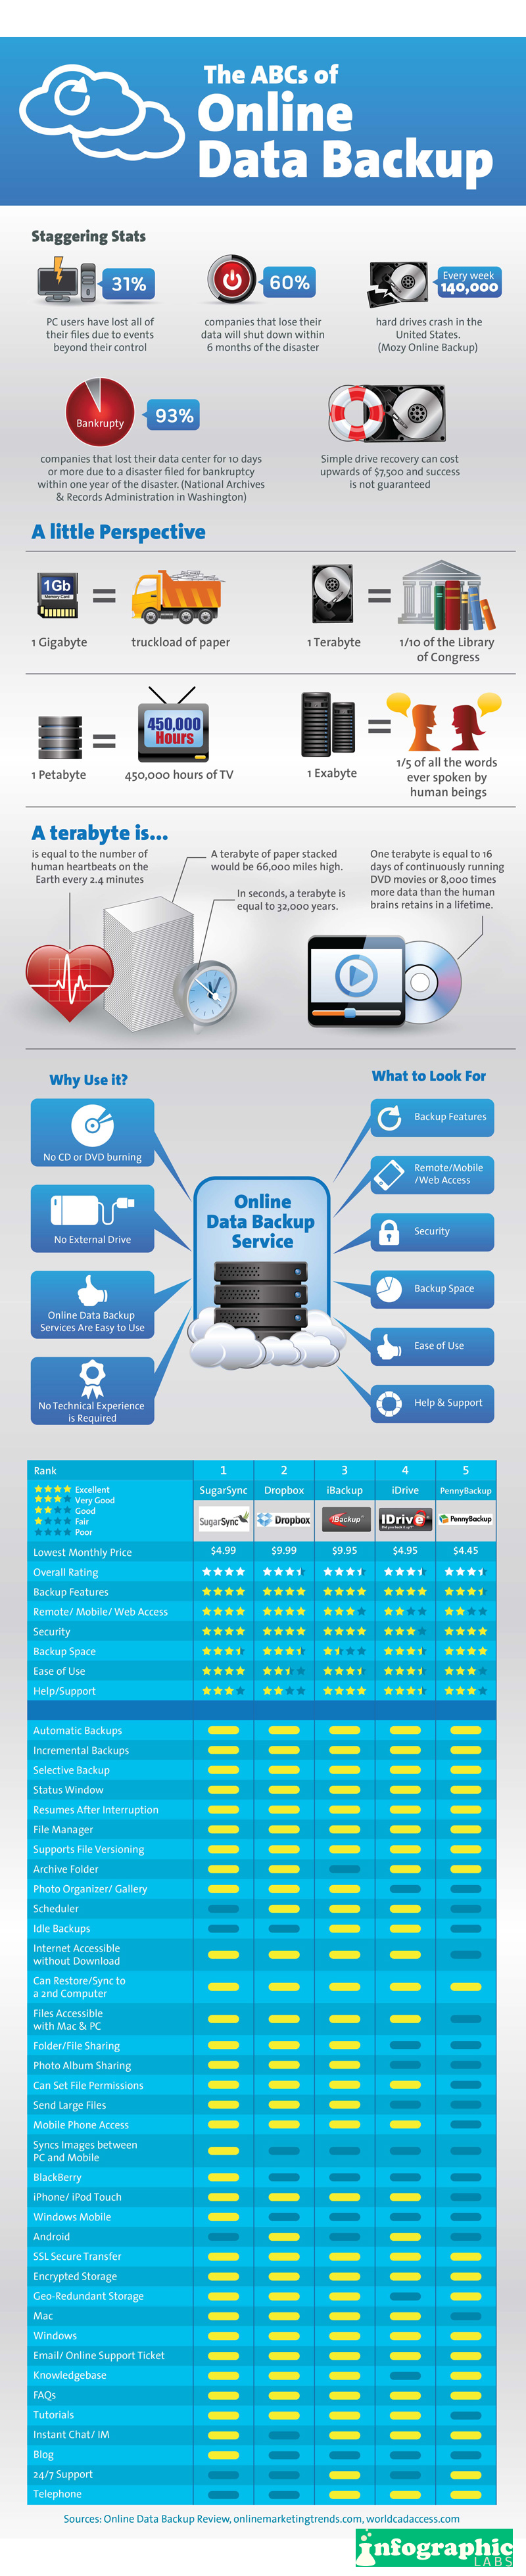 Online Data Backup: Why your Business needs it